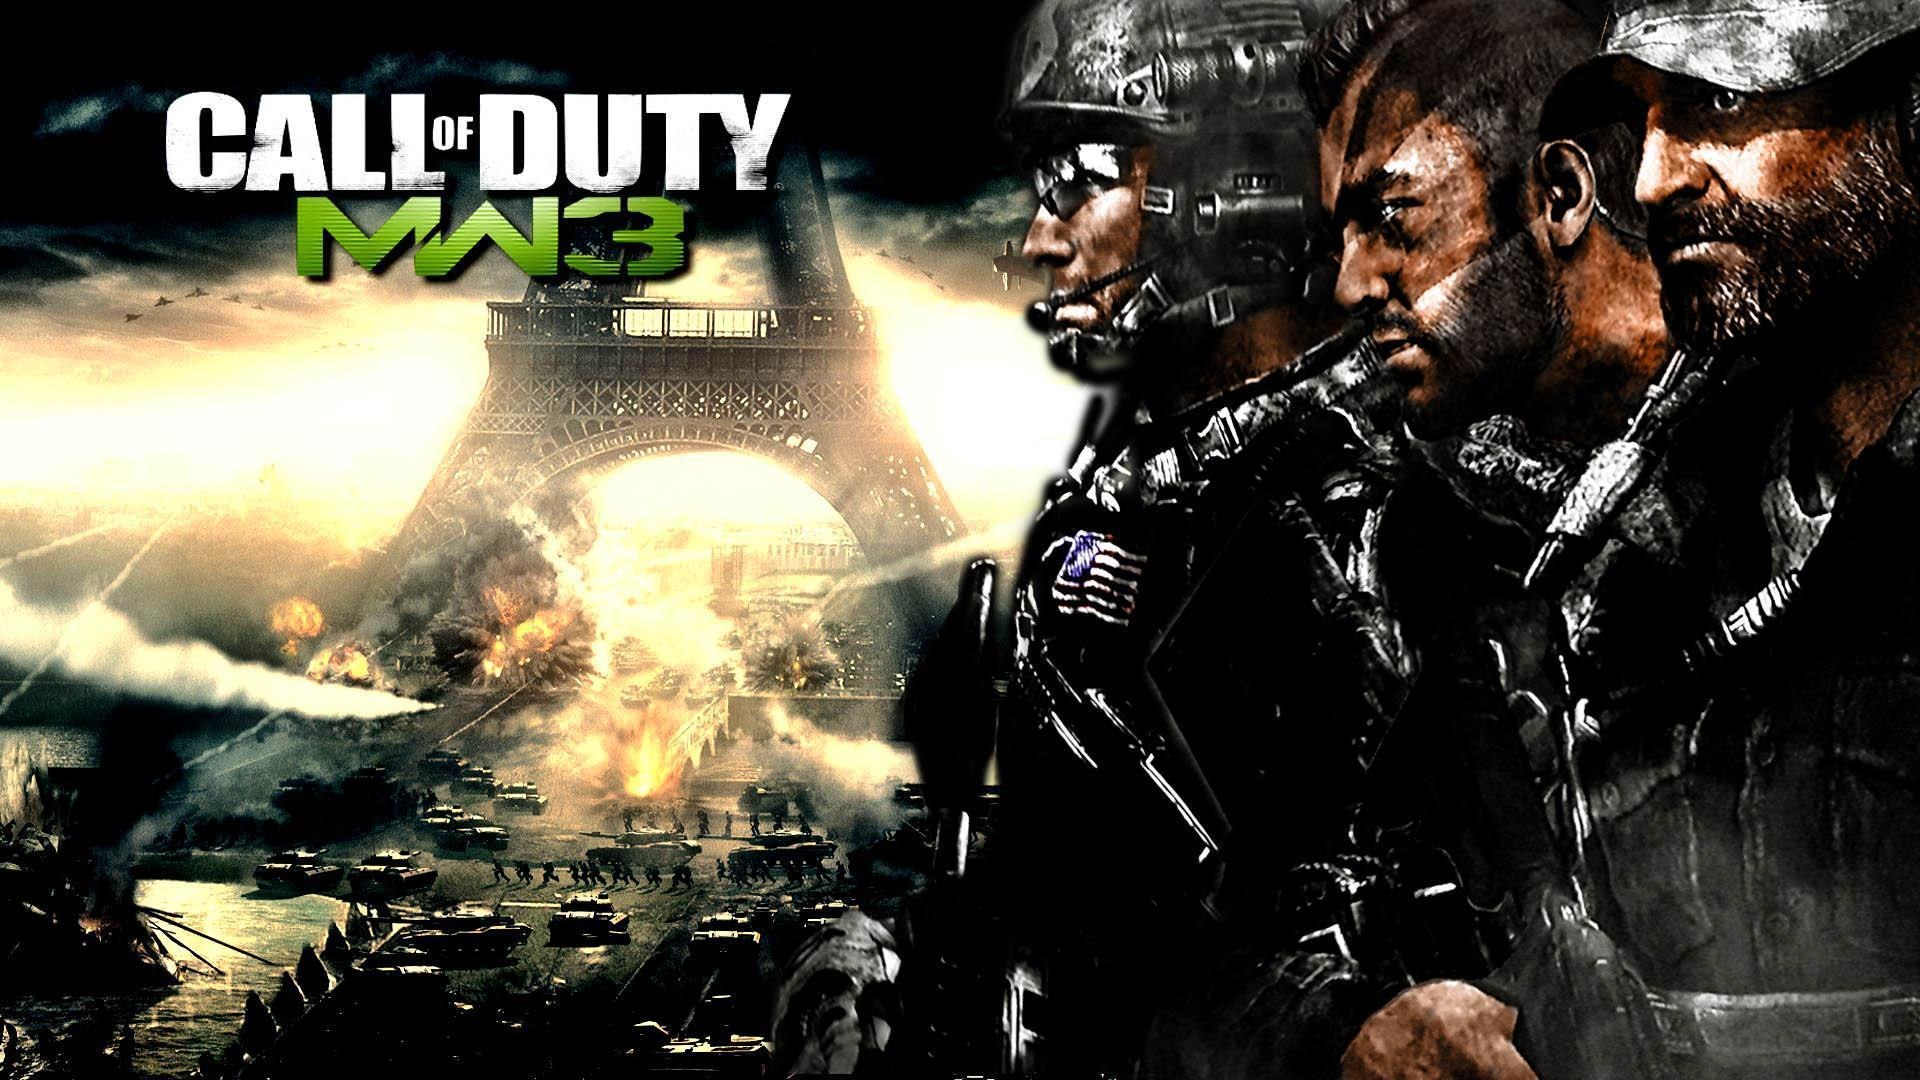 Mw3 Wallpapers Top Free Mw3 Backgrounds Wallpaperaccess